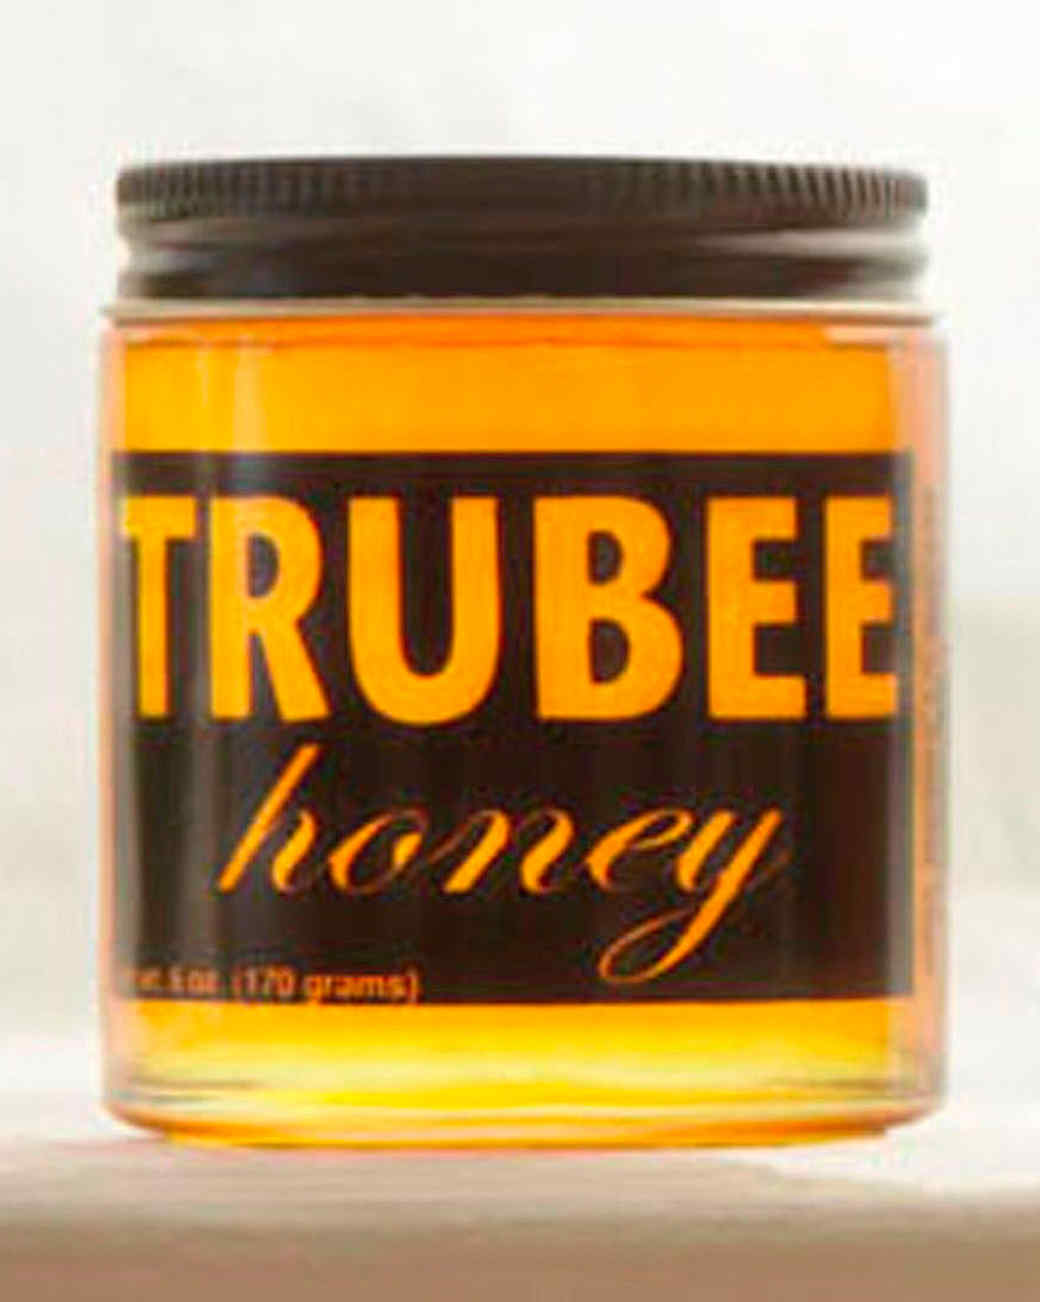 trubee-honey-6-oz-jar-1114.jpg